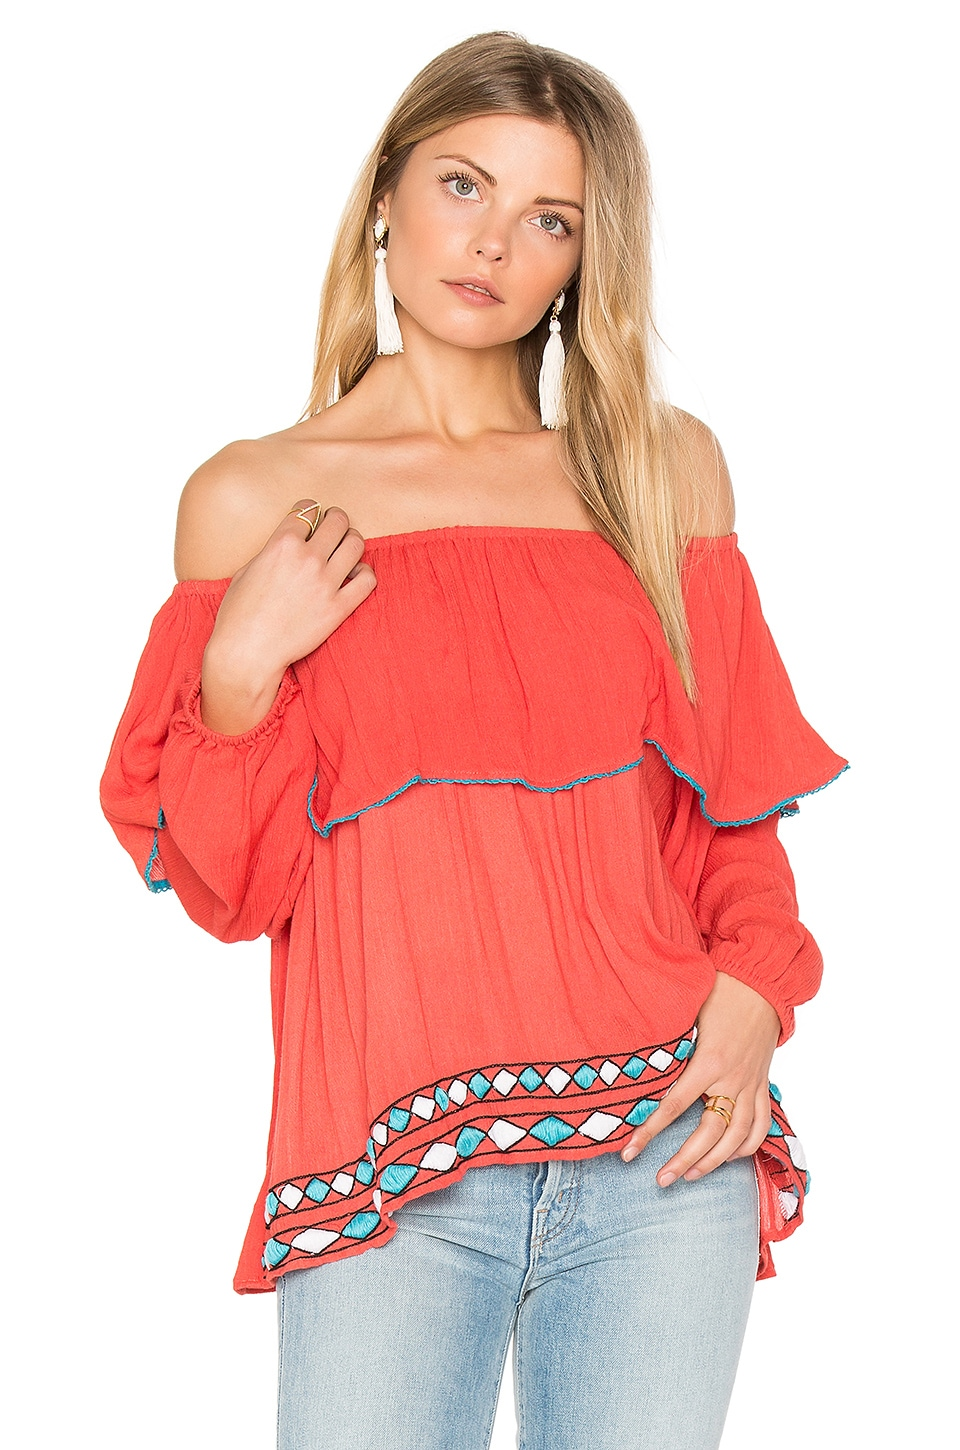 Bondi Off The Shoulder Top by PIPER